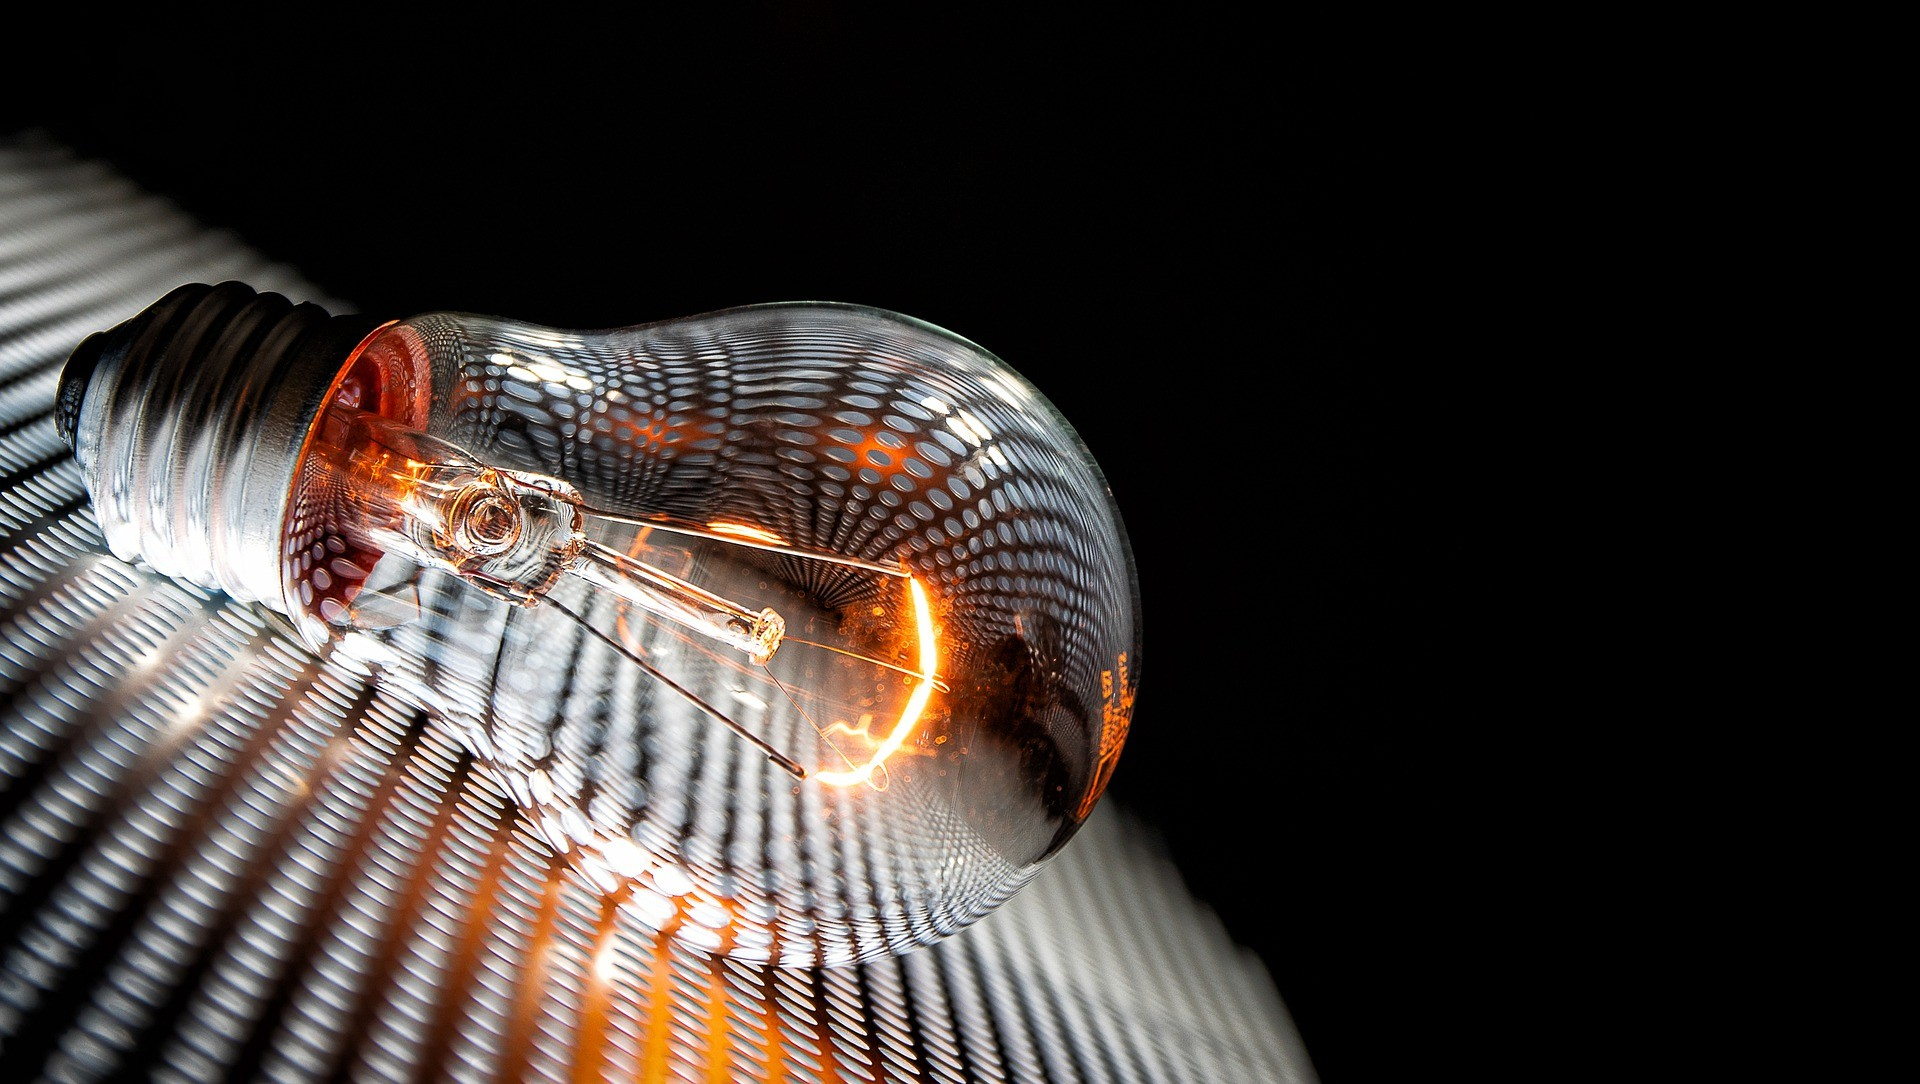 Researchers have made an important discovery that could make it easier to collect energy from heat.